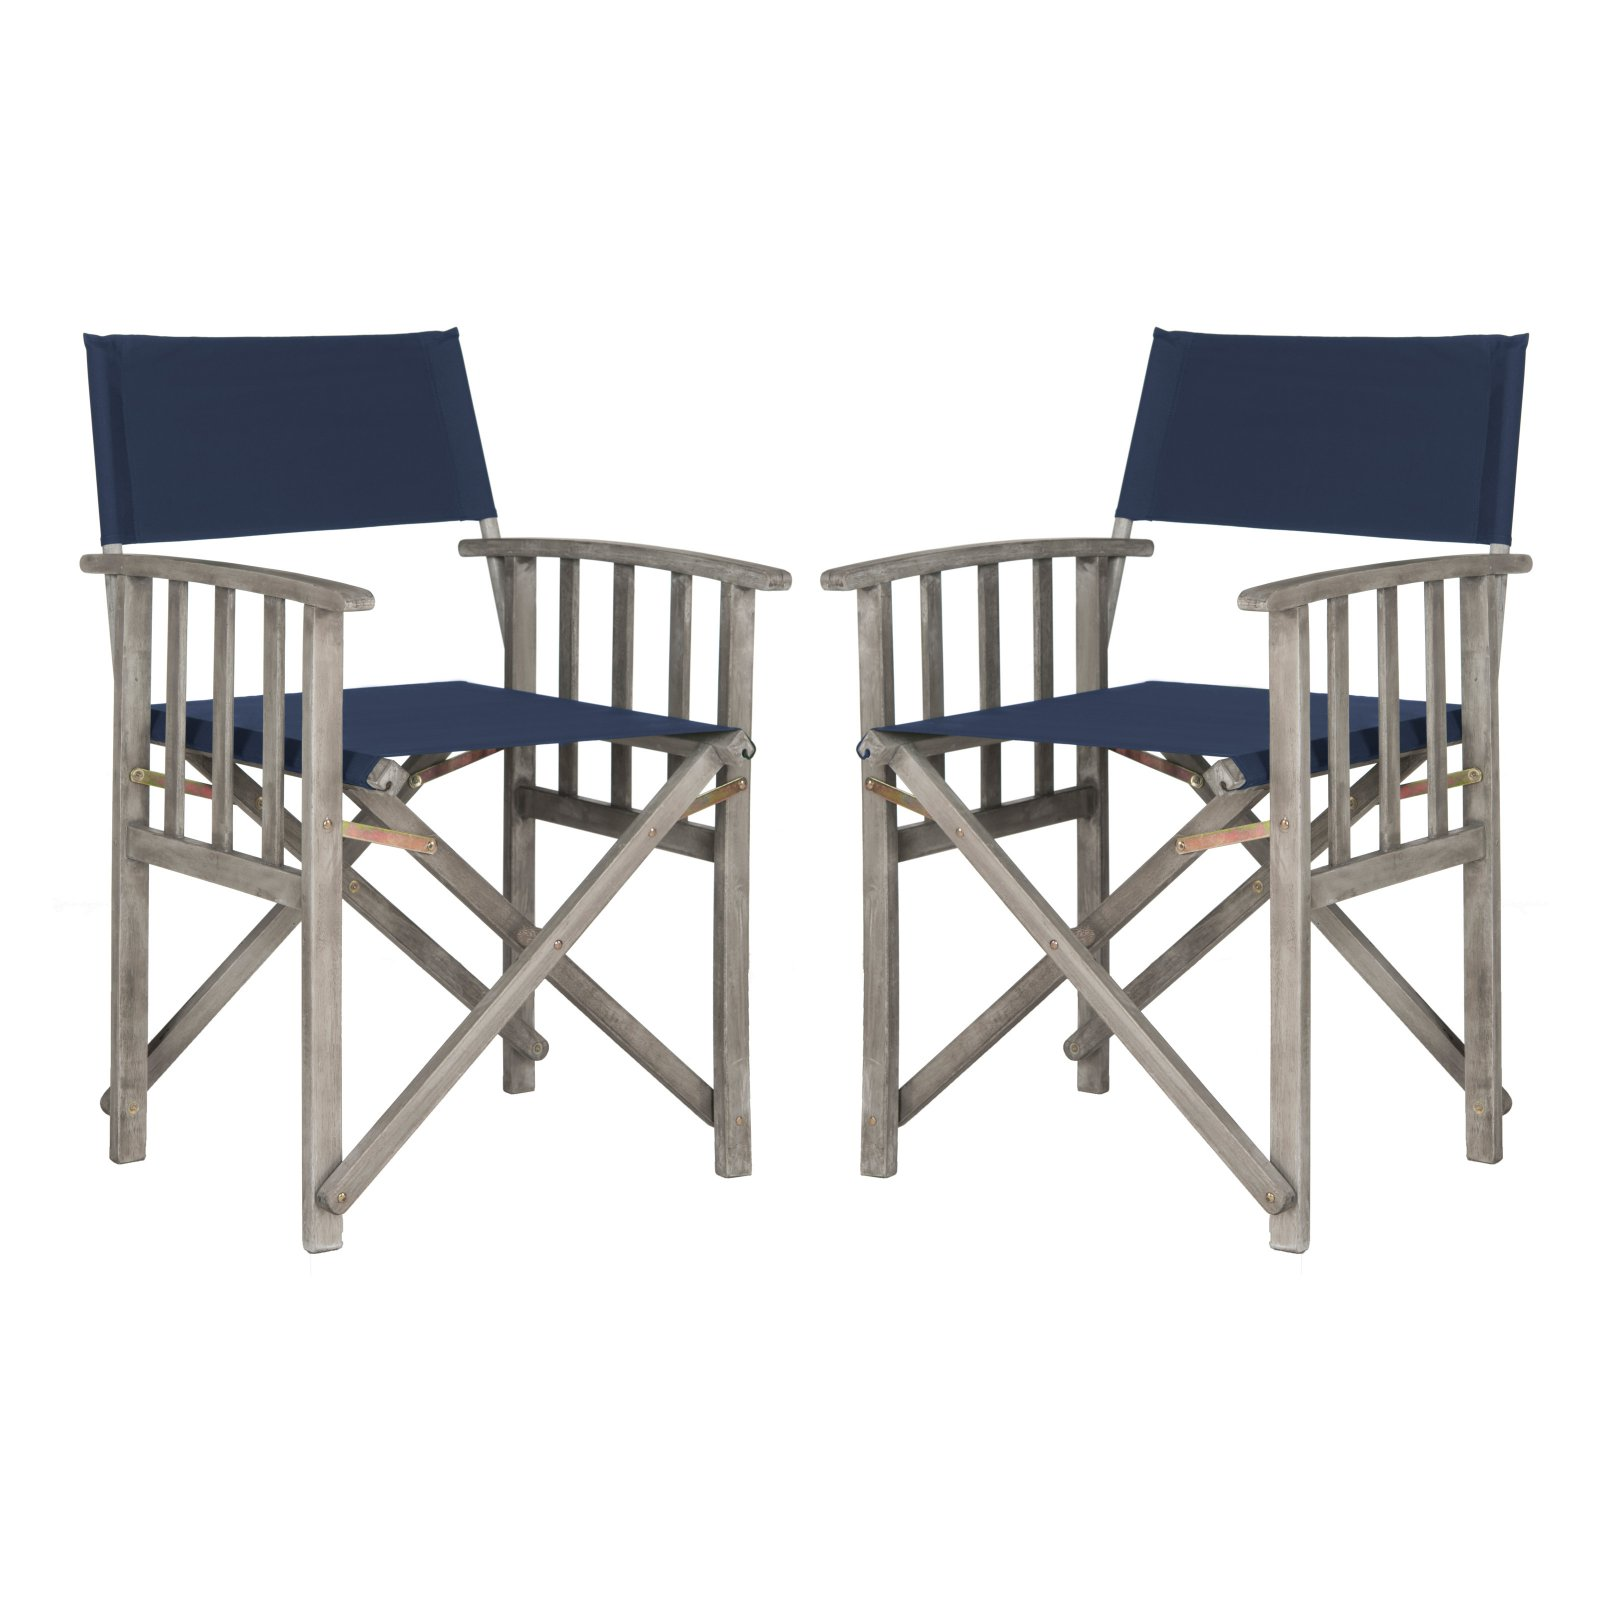 Safavieh Laguna Outdoor Director Chair, Multiple Colors, Set of 2